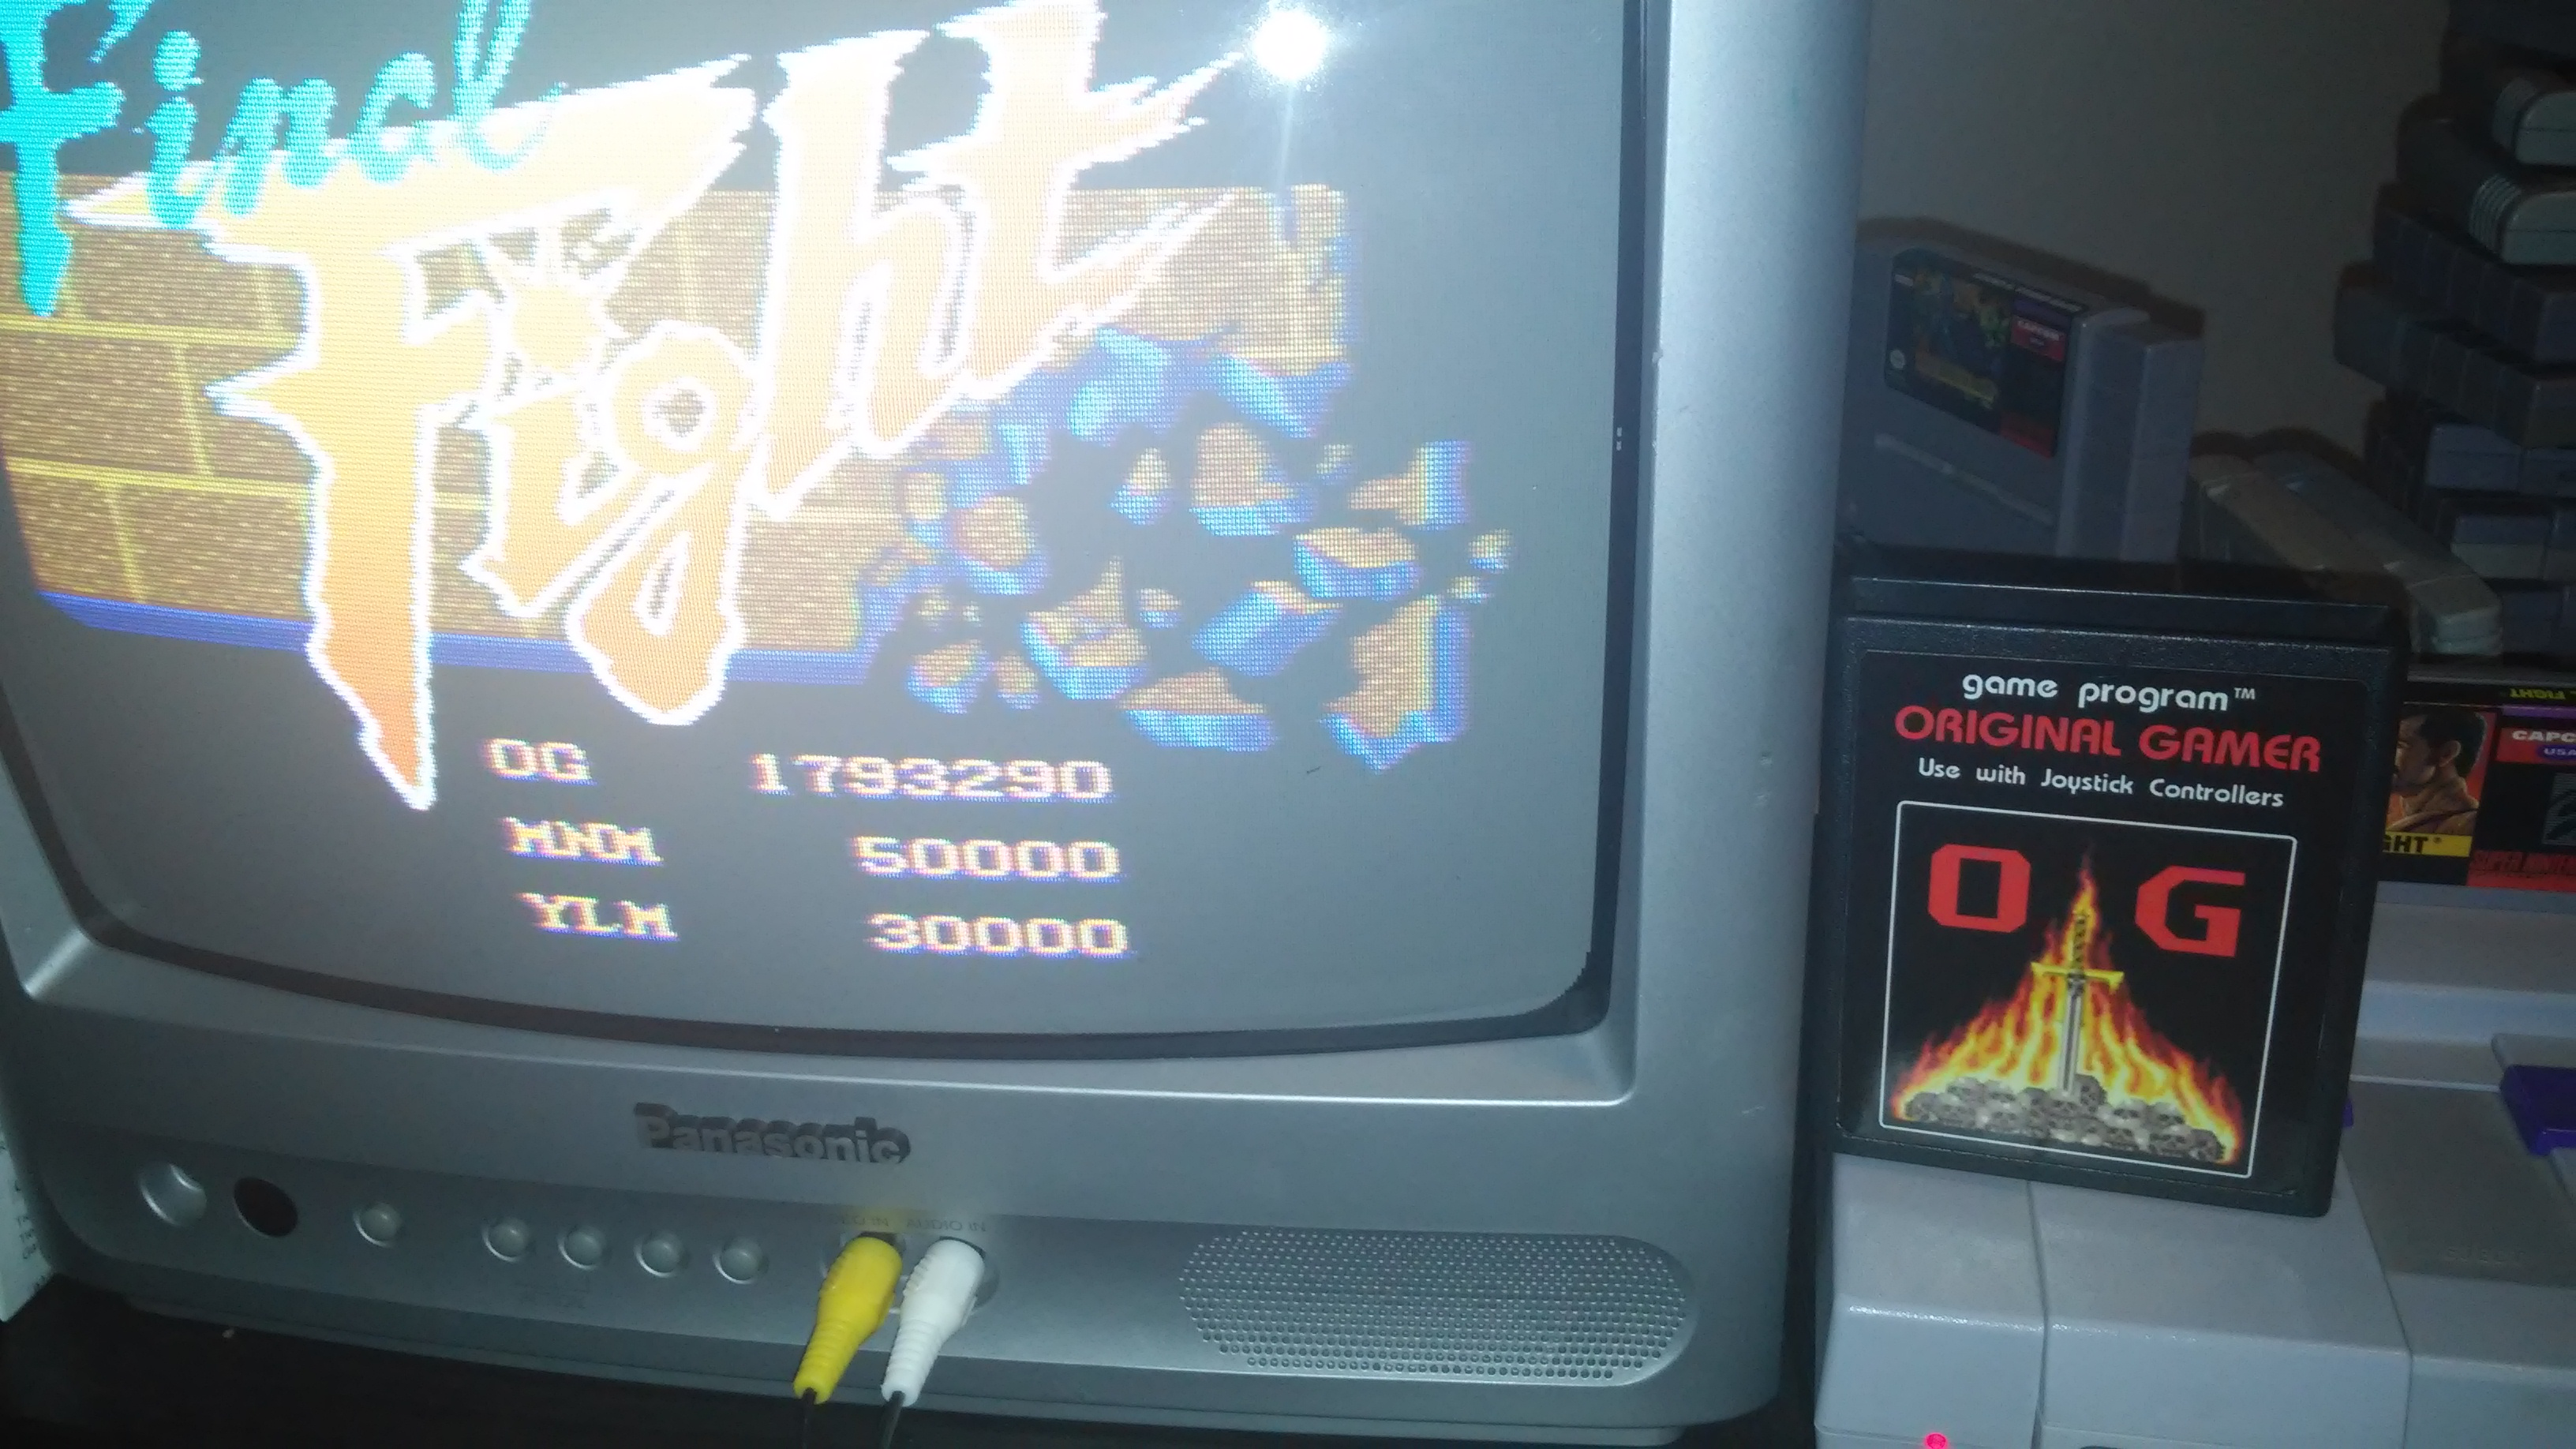 Final Fight: No Continue 1,793,290 points